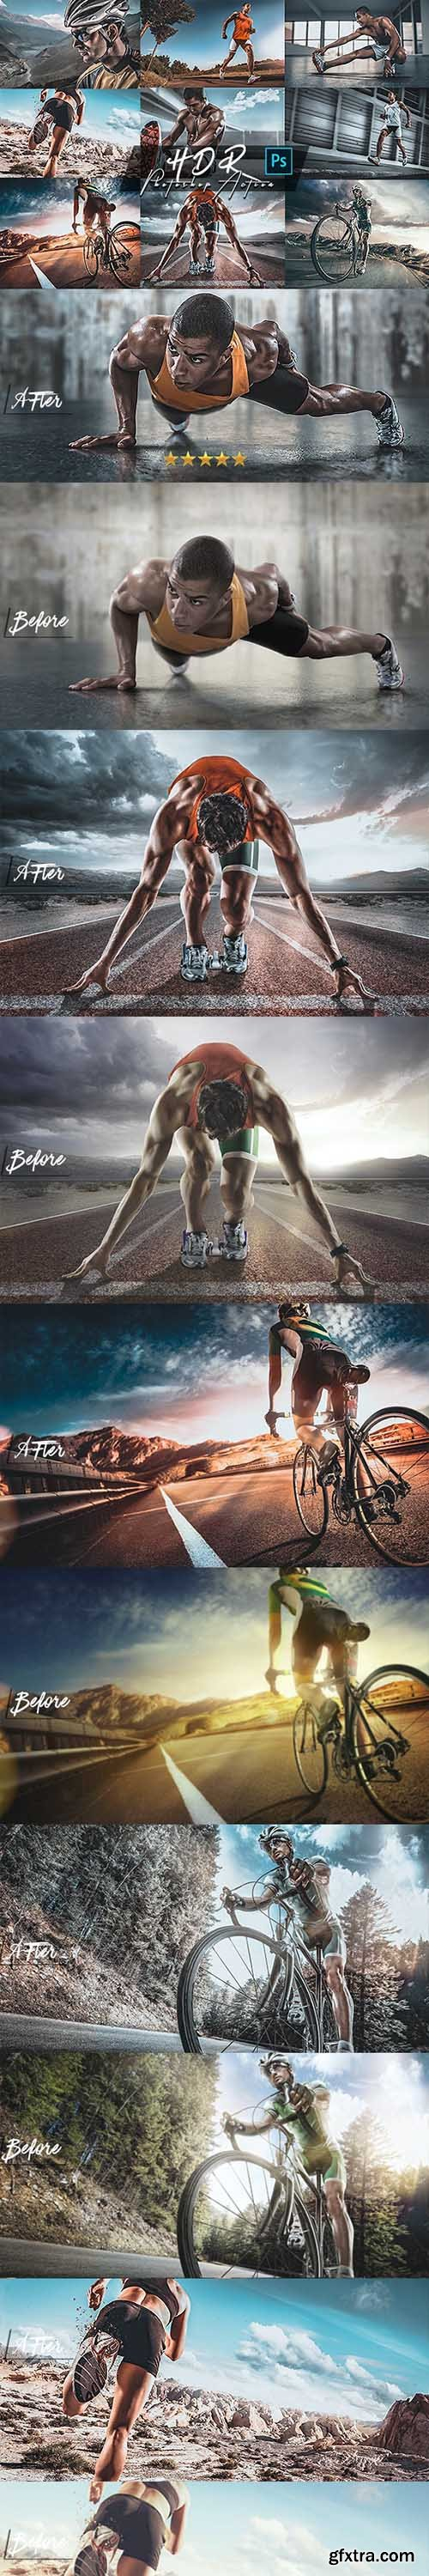 GraphicRiver - HDR Photoshop Action 25850209